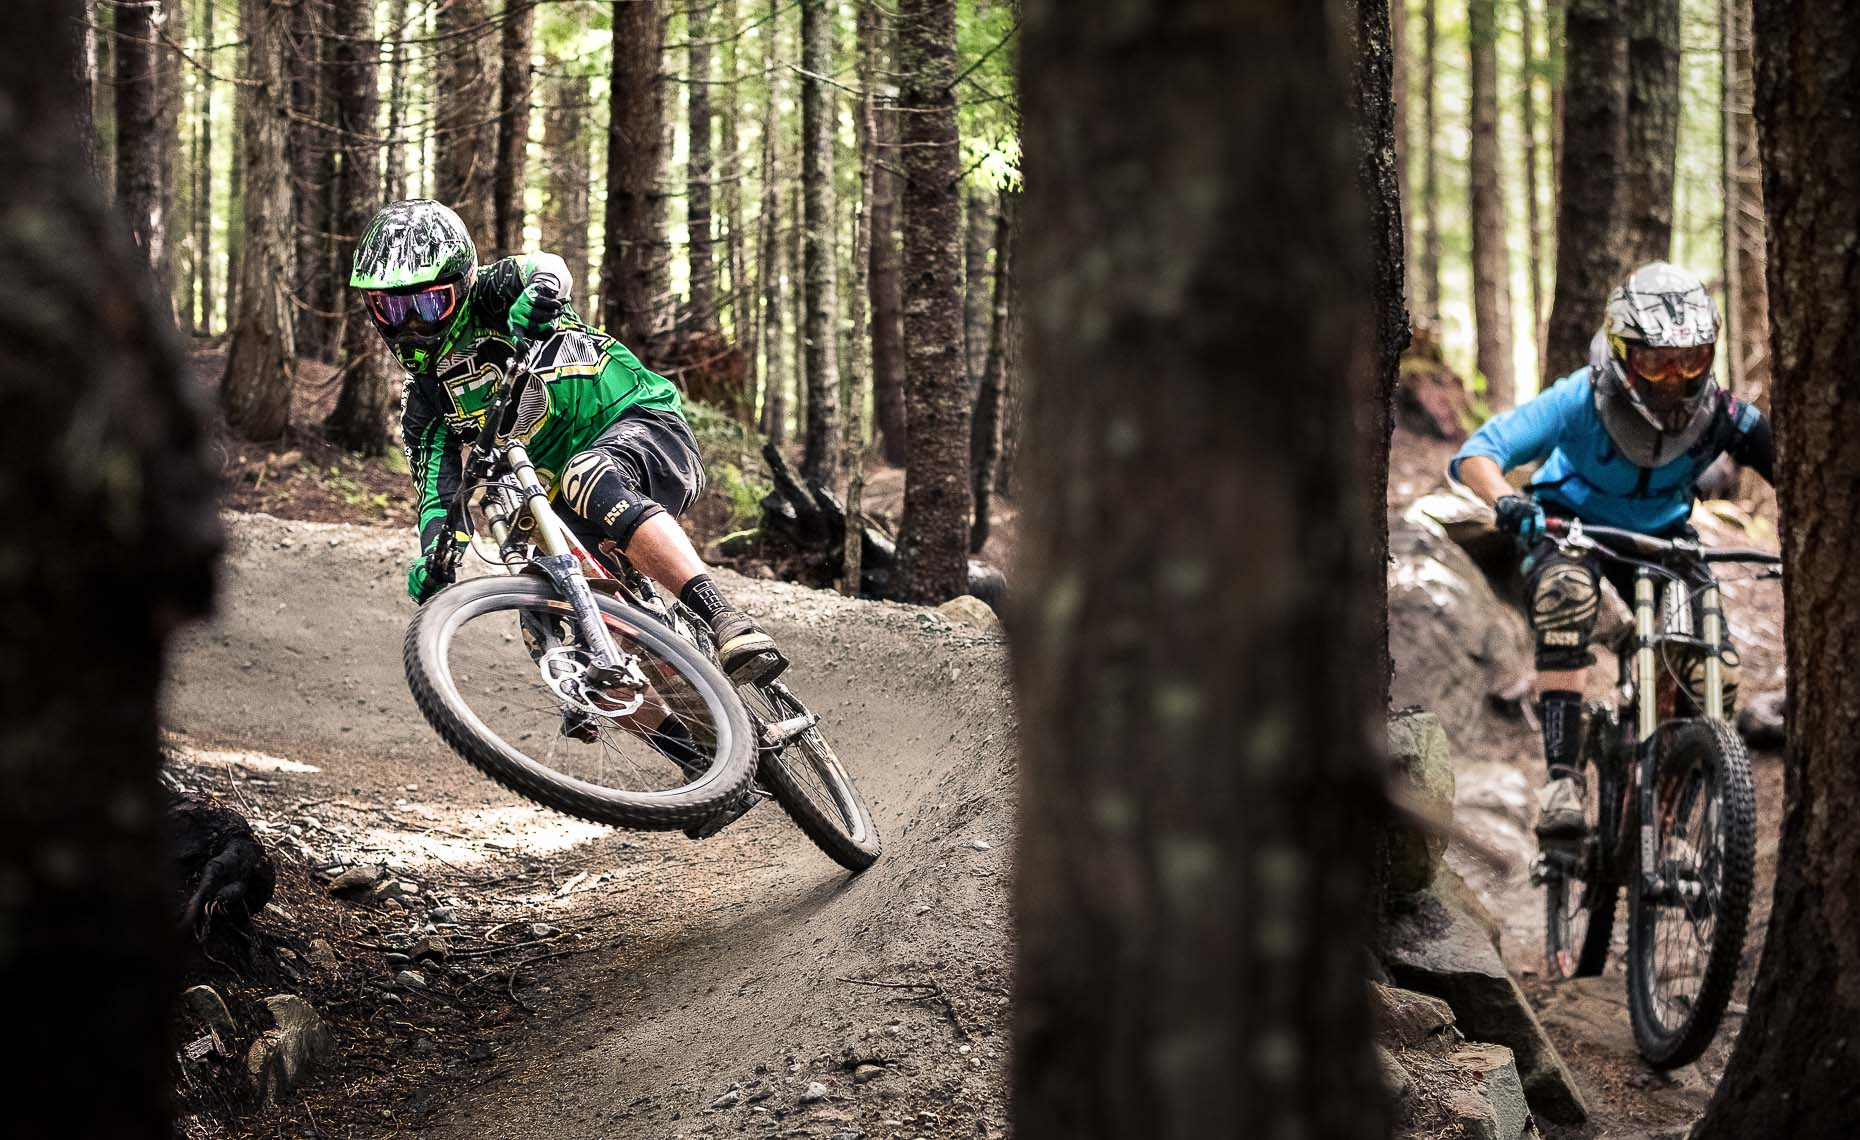 Double mountain bike action shot with two pro athletes.